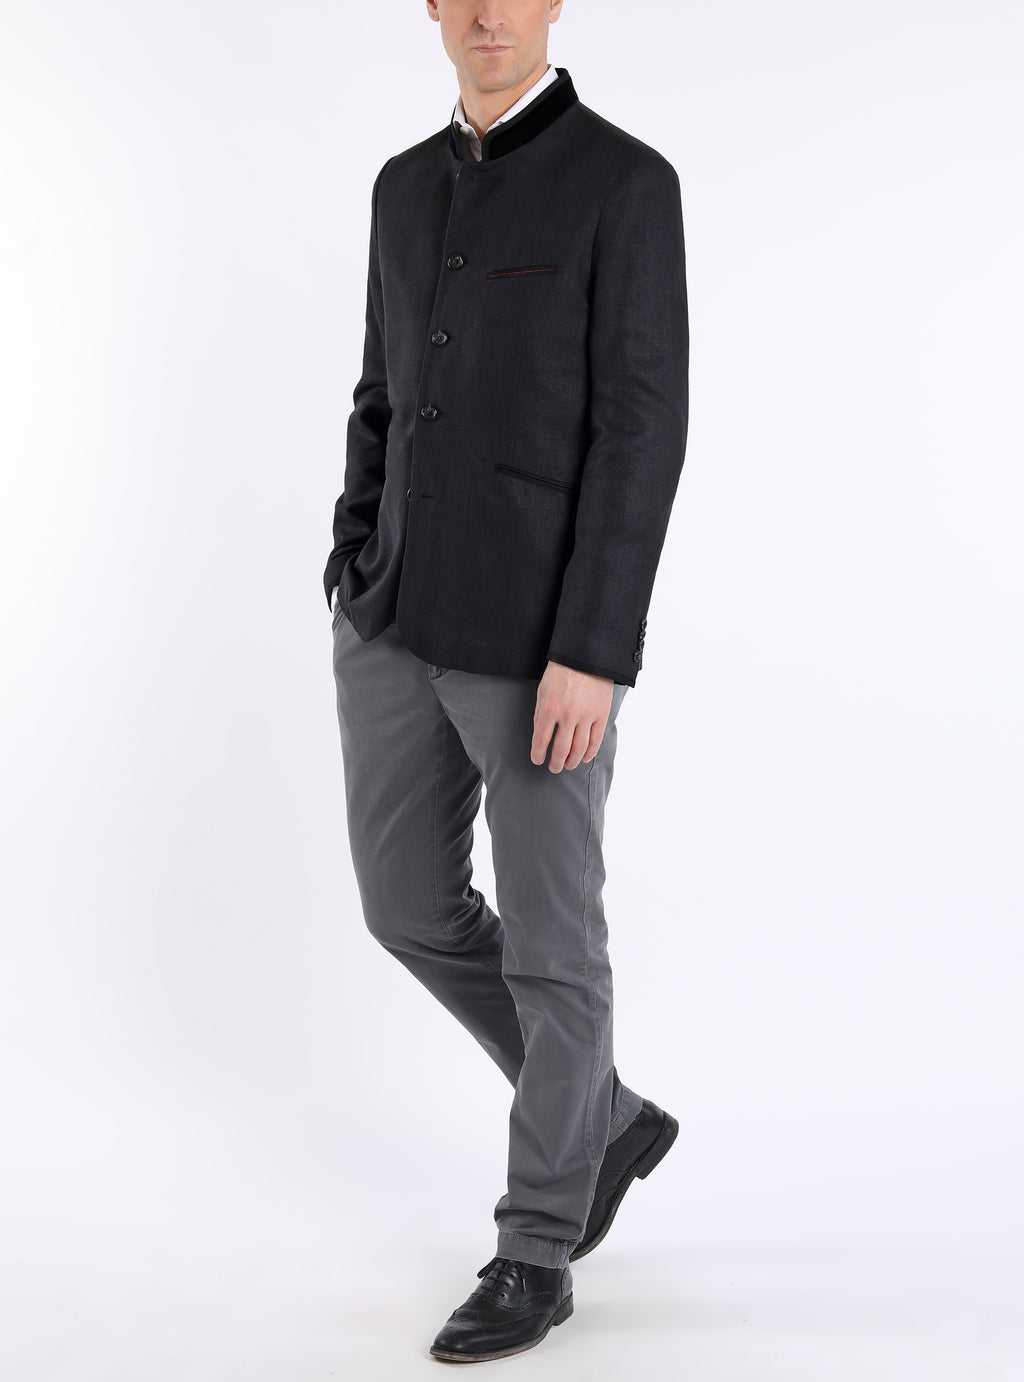 Jacket from wild-silk in black